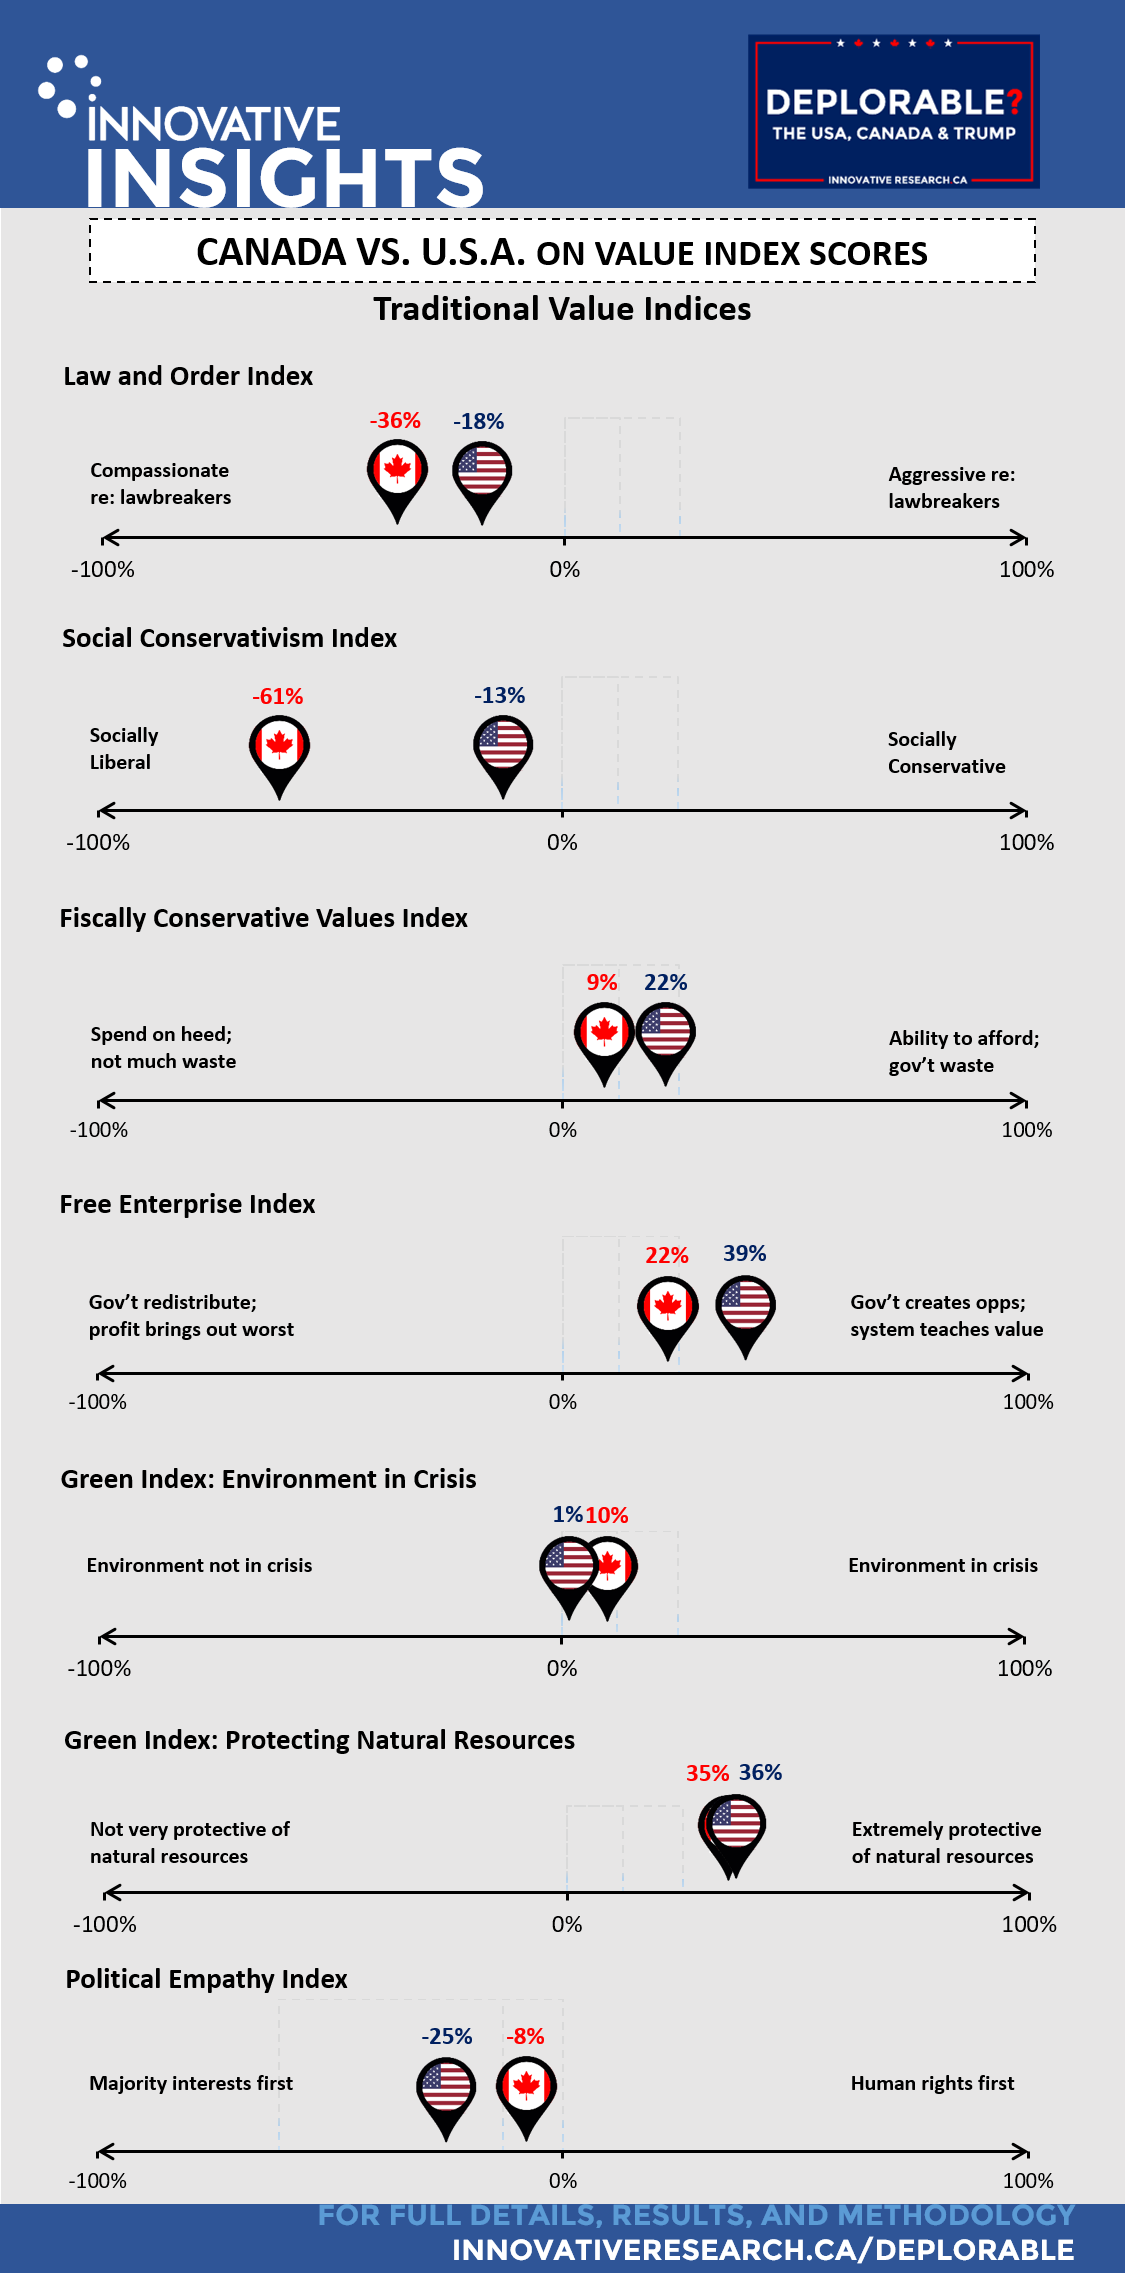 infographic-deplorable-traditional-values-indices